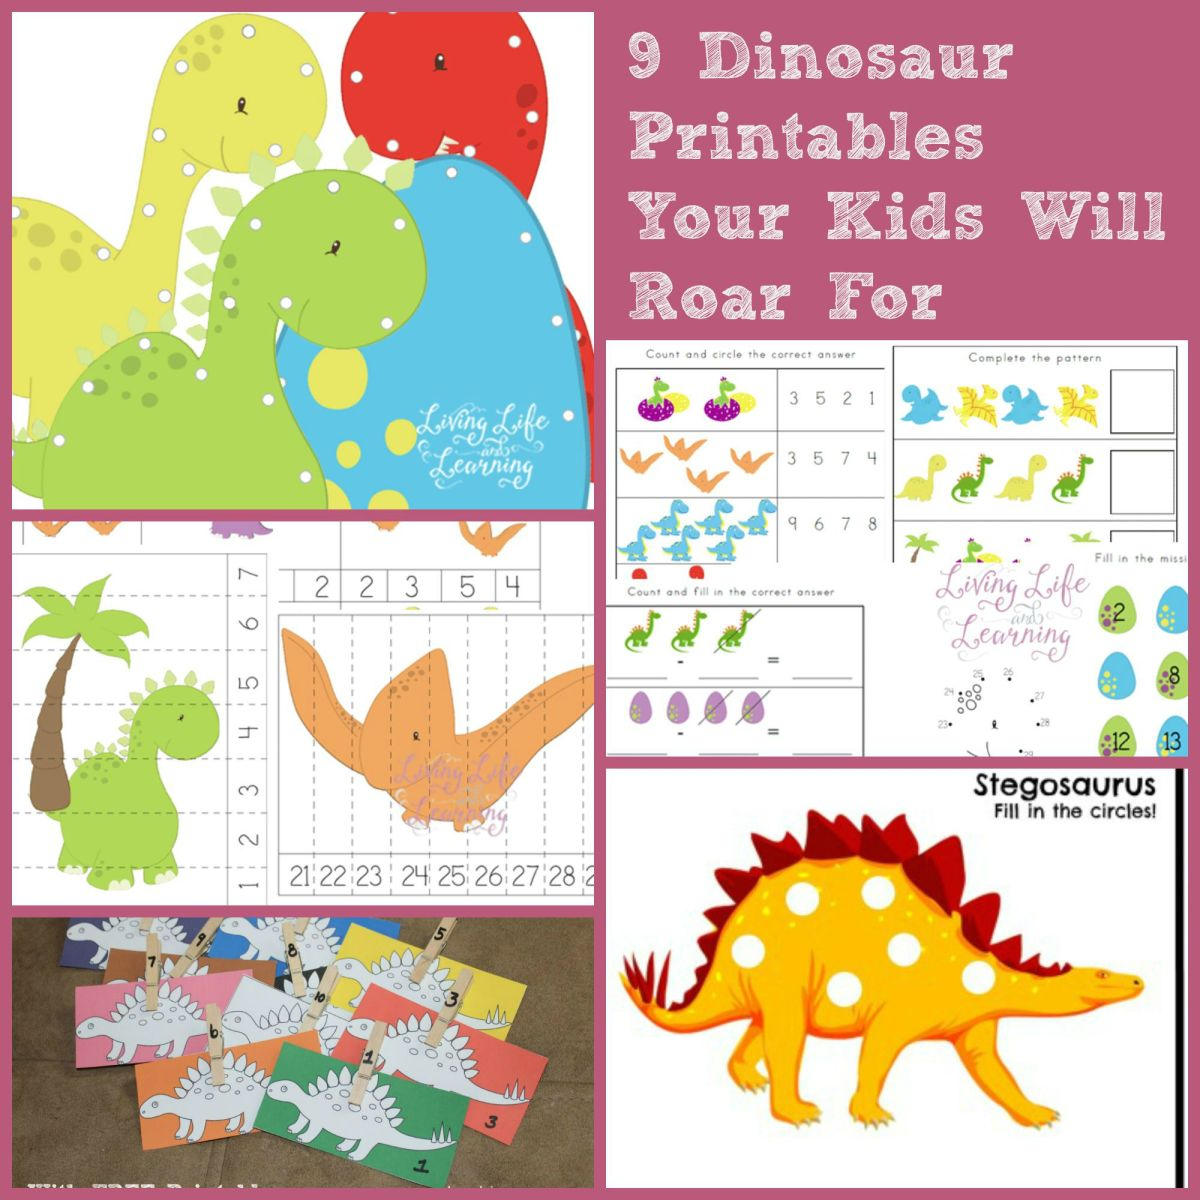 9 Dinosaur Printables To Roar For!